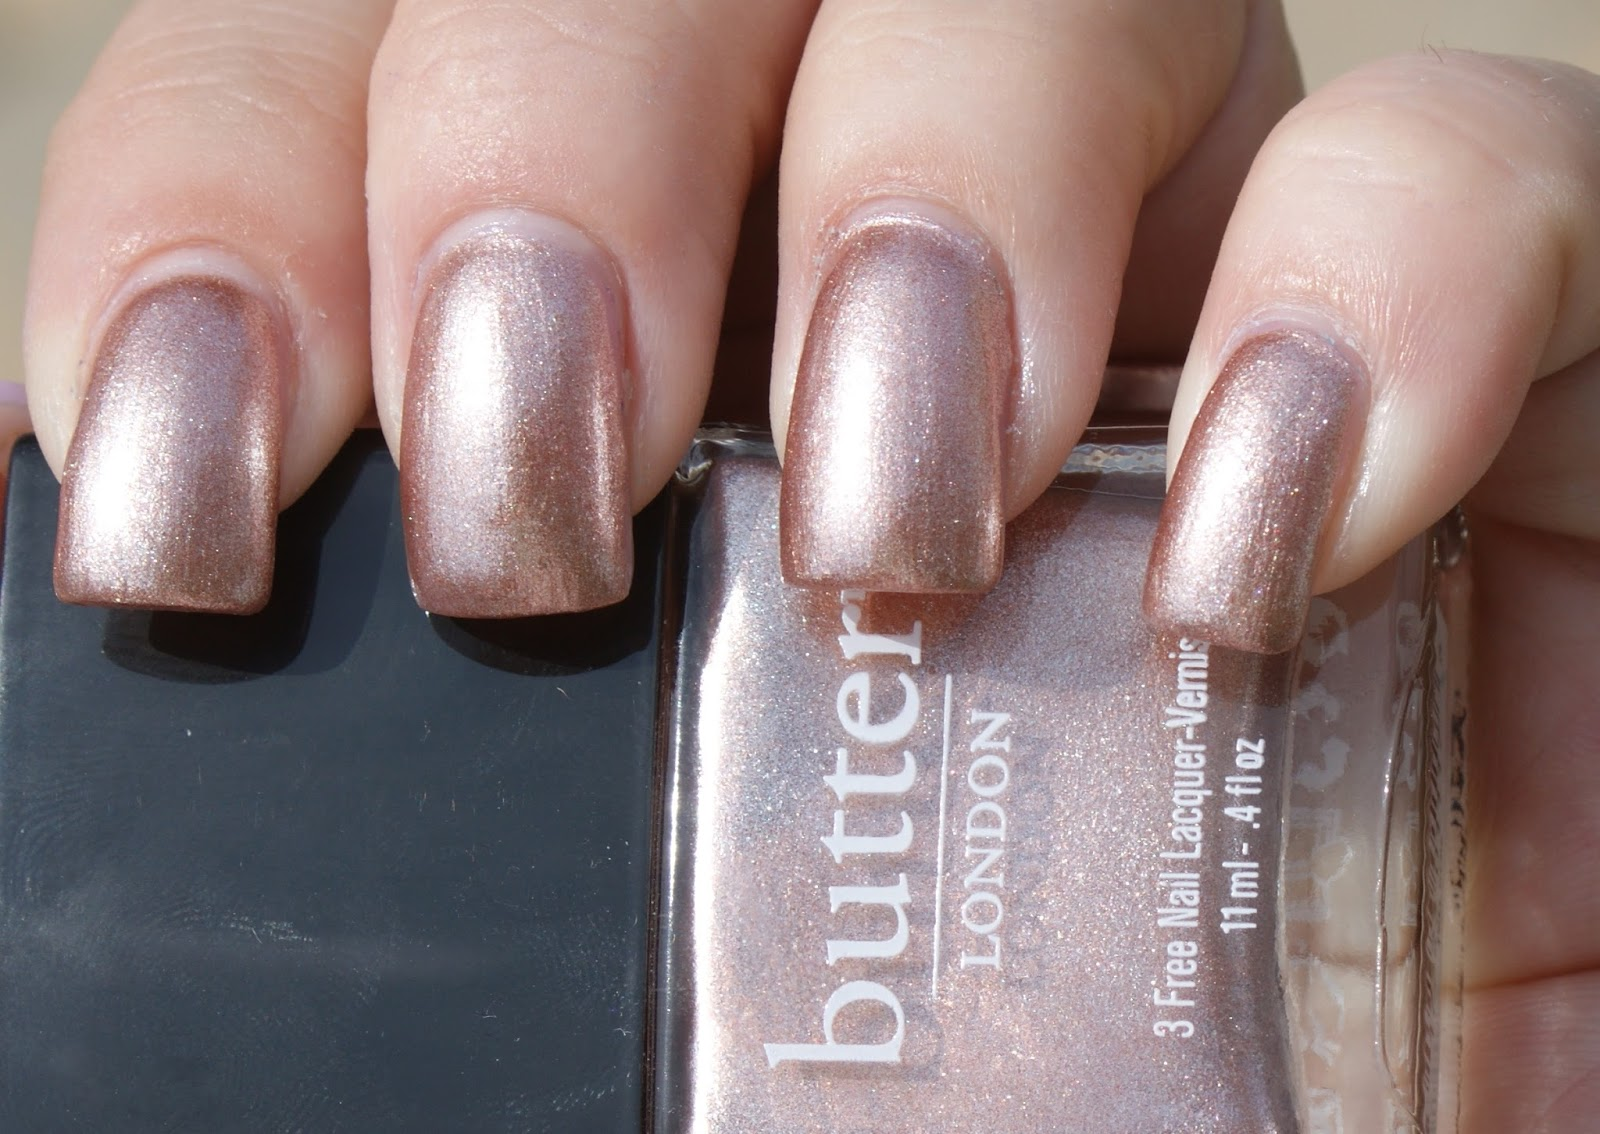 Princess Polish: Swatch and Review - butter LONDON Poole and Champers